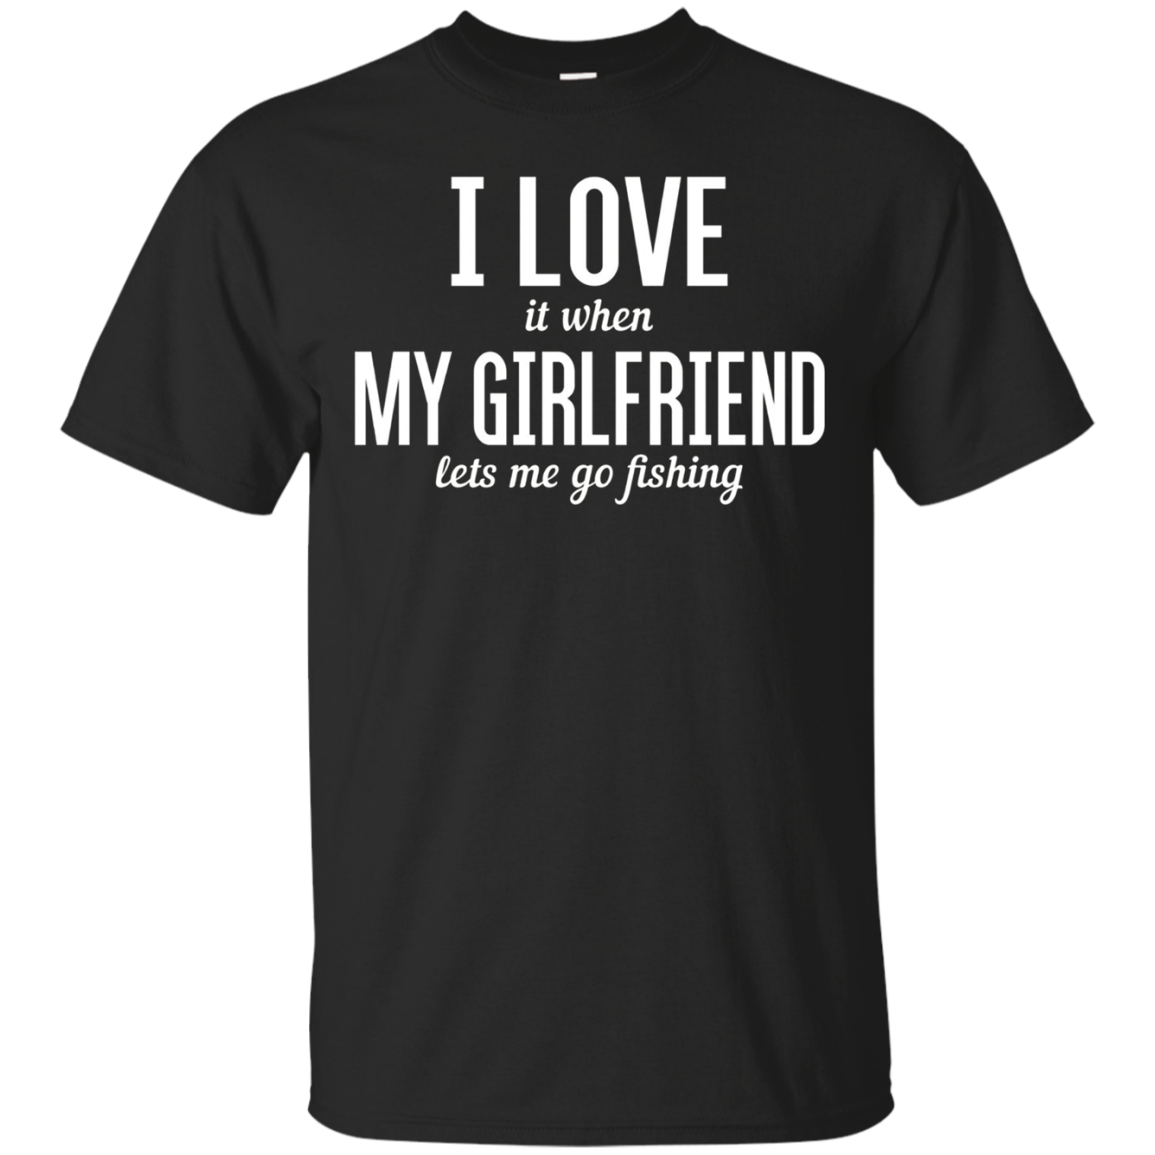 I Love it When My Girlfriend Lets Me Go Fishing Funny TShirt